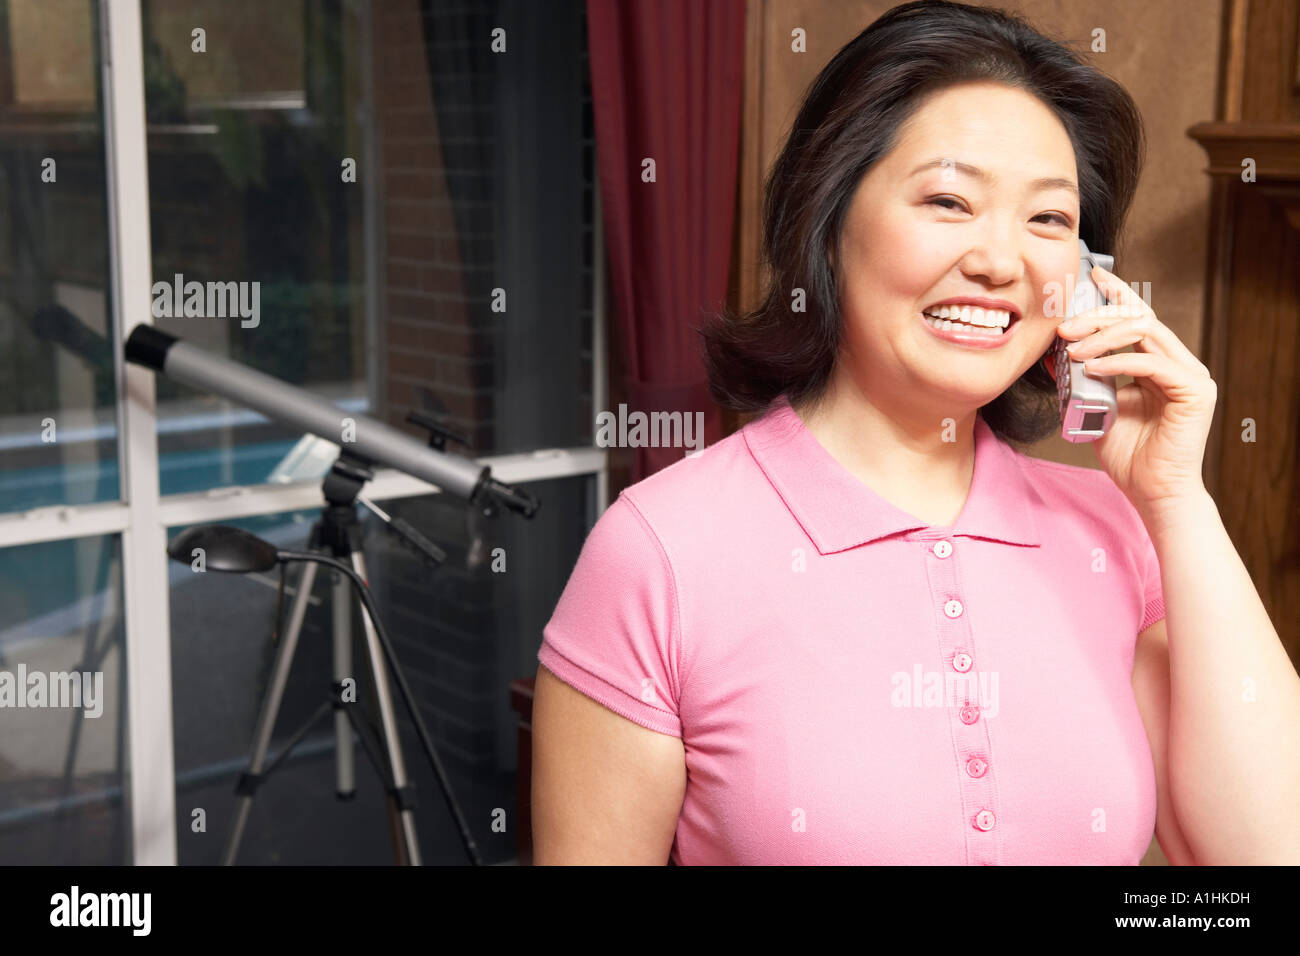 Portrait of a mature woman talking on a cordless telephone - Stock Image